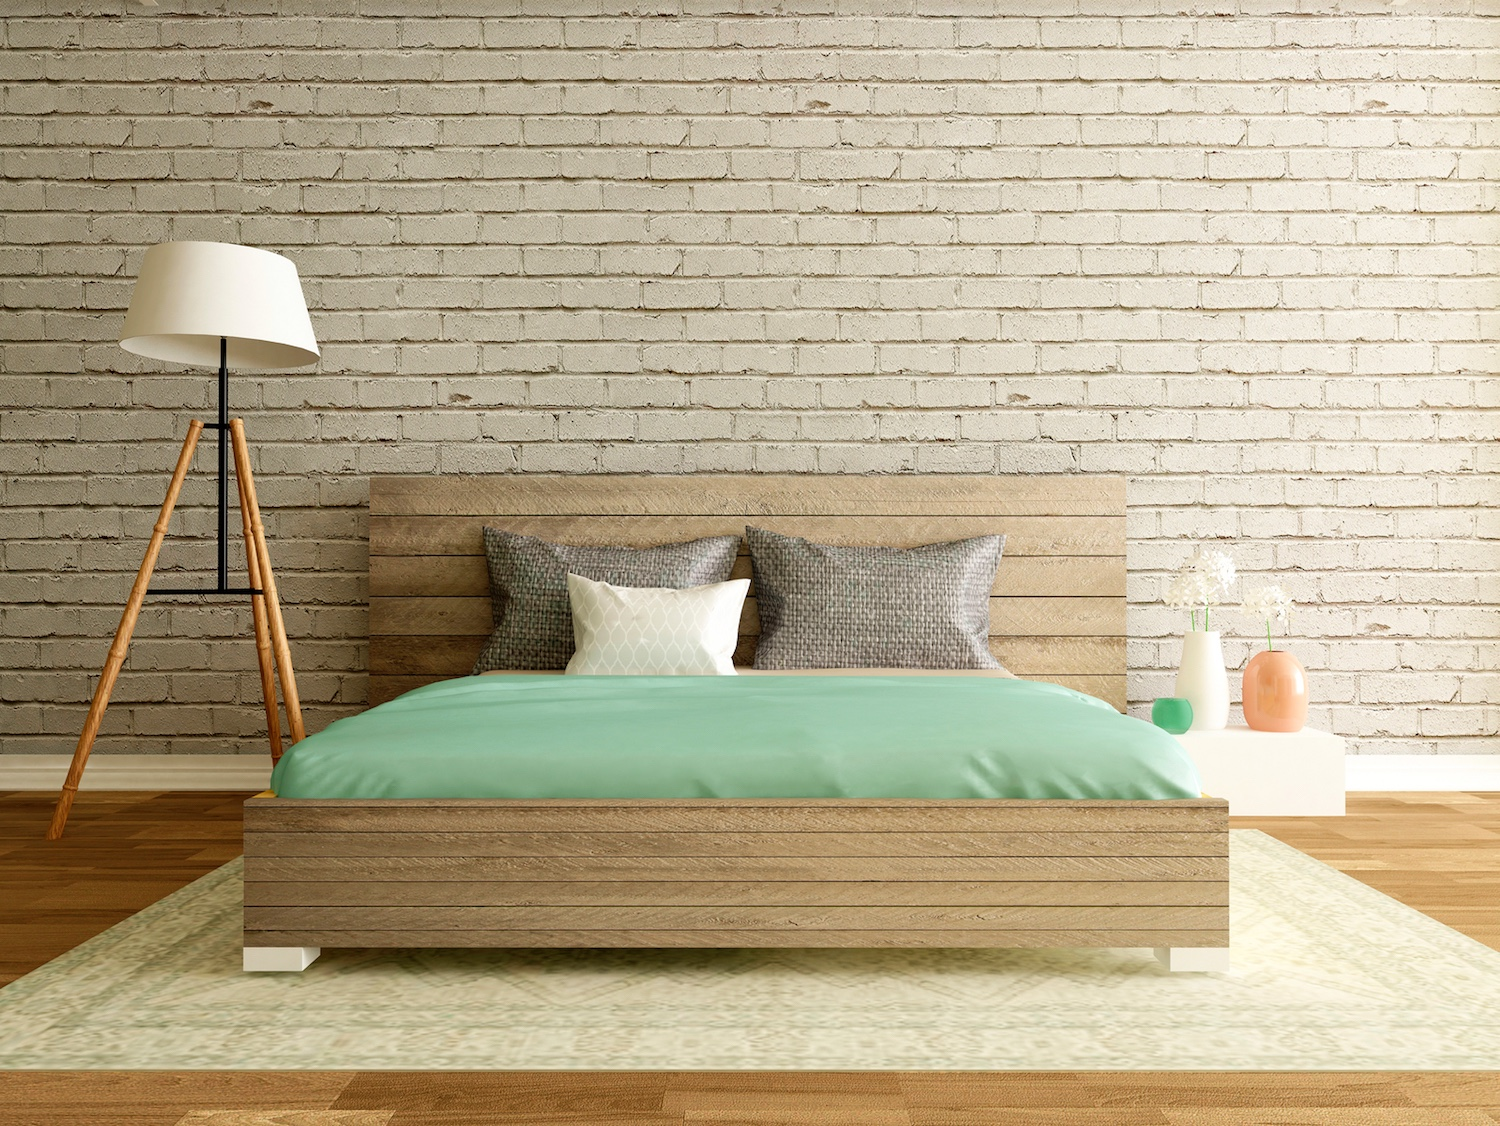 modern loft interior, bedroom with brick wall